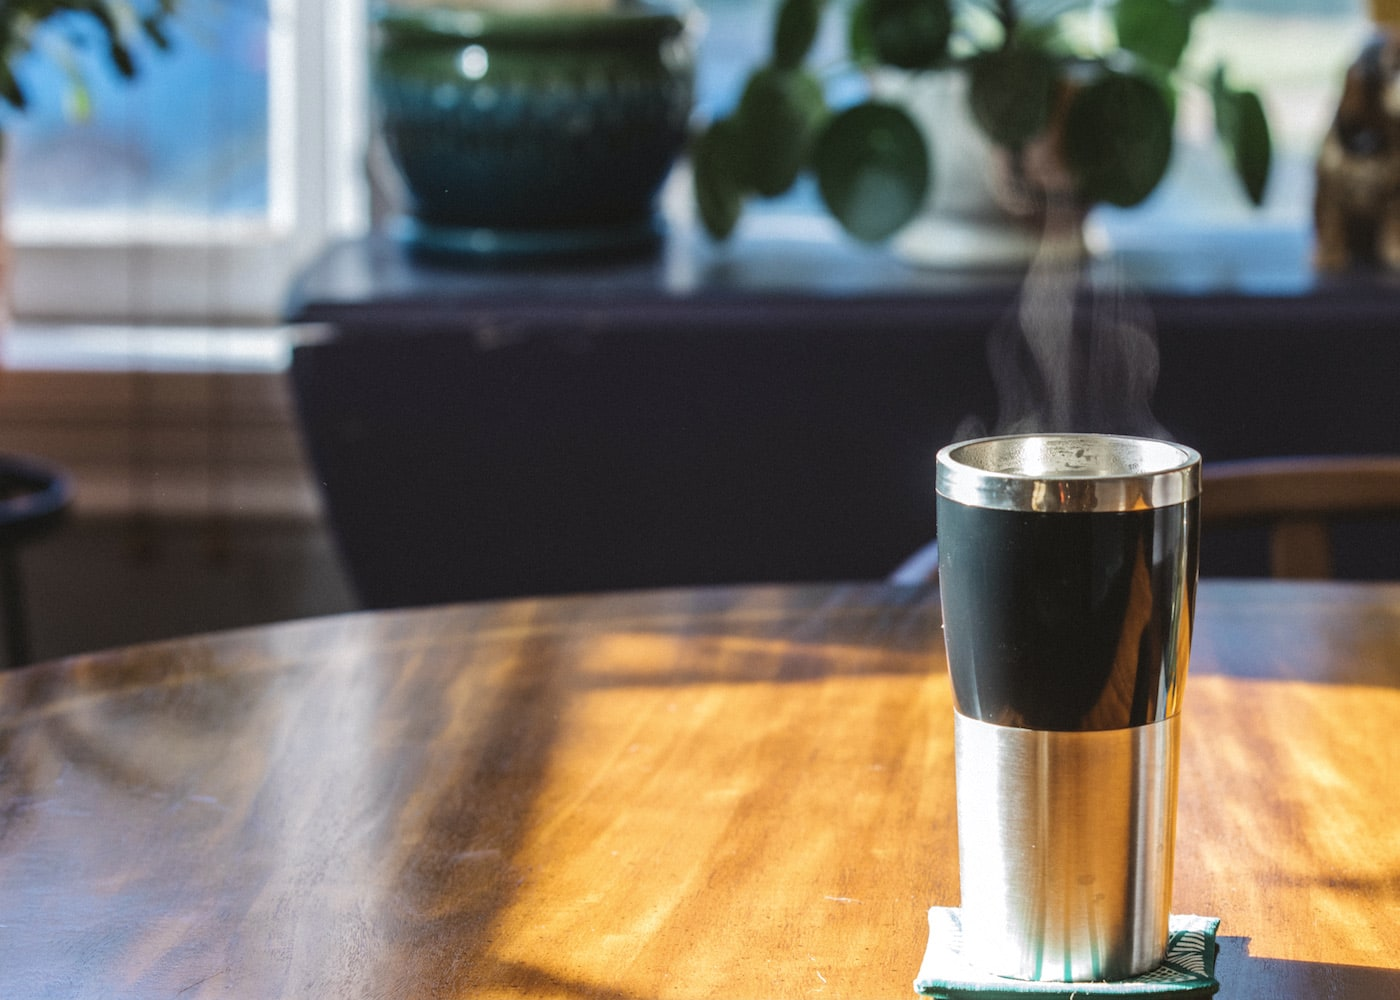 Hot coffee in a stainless steel tumbler